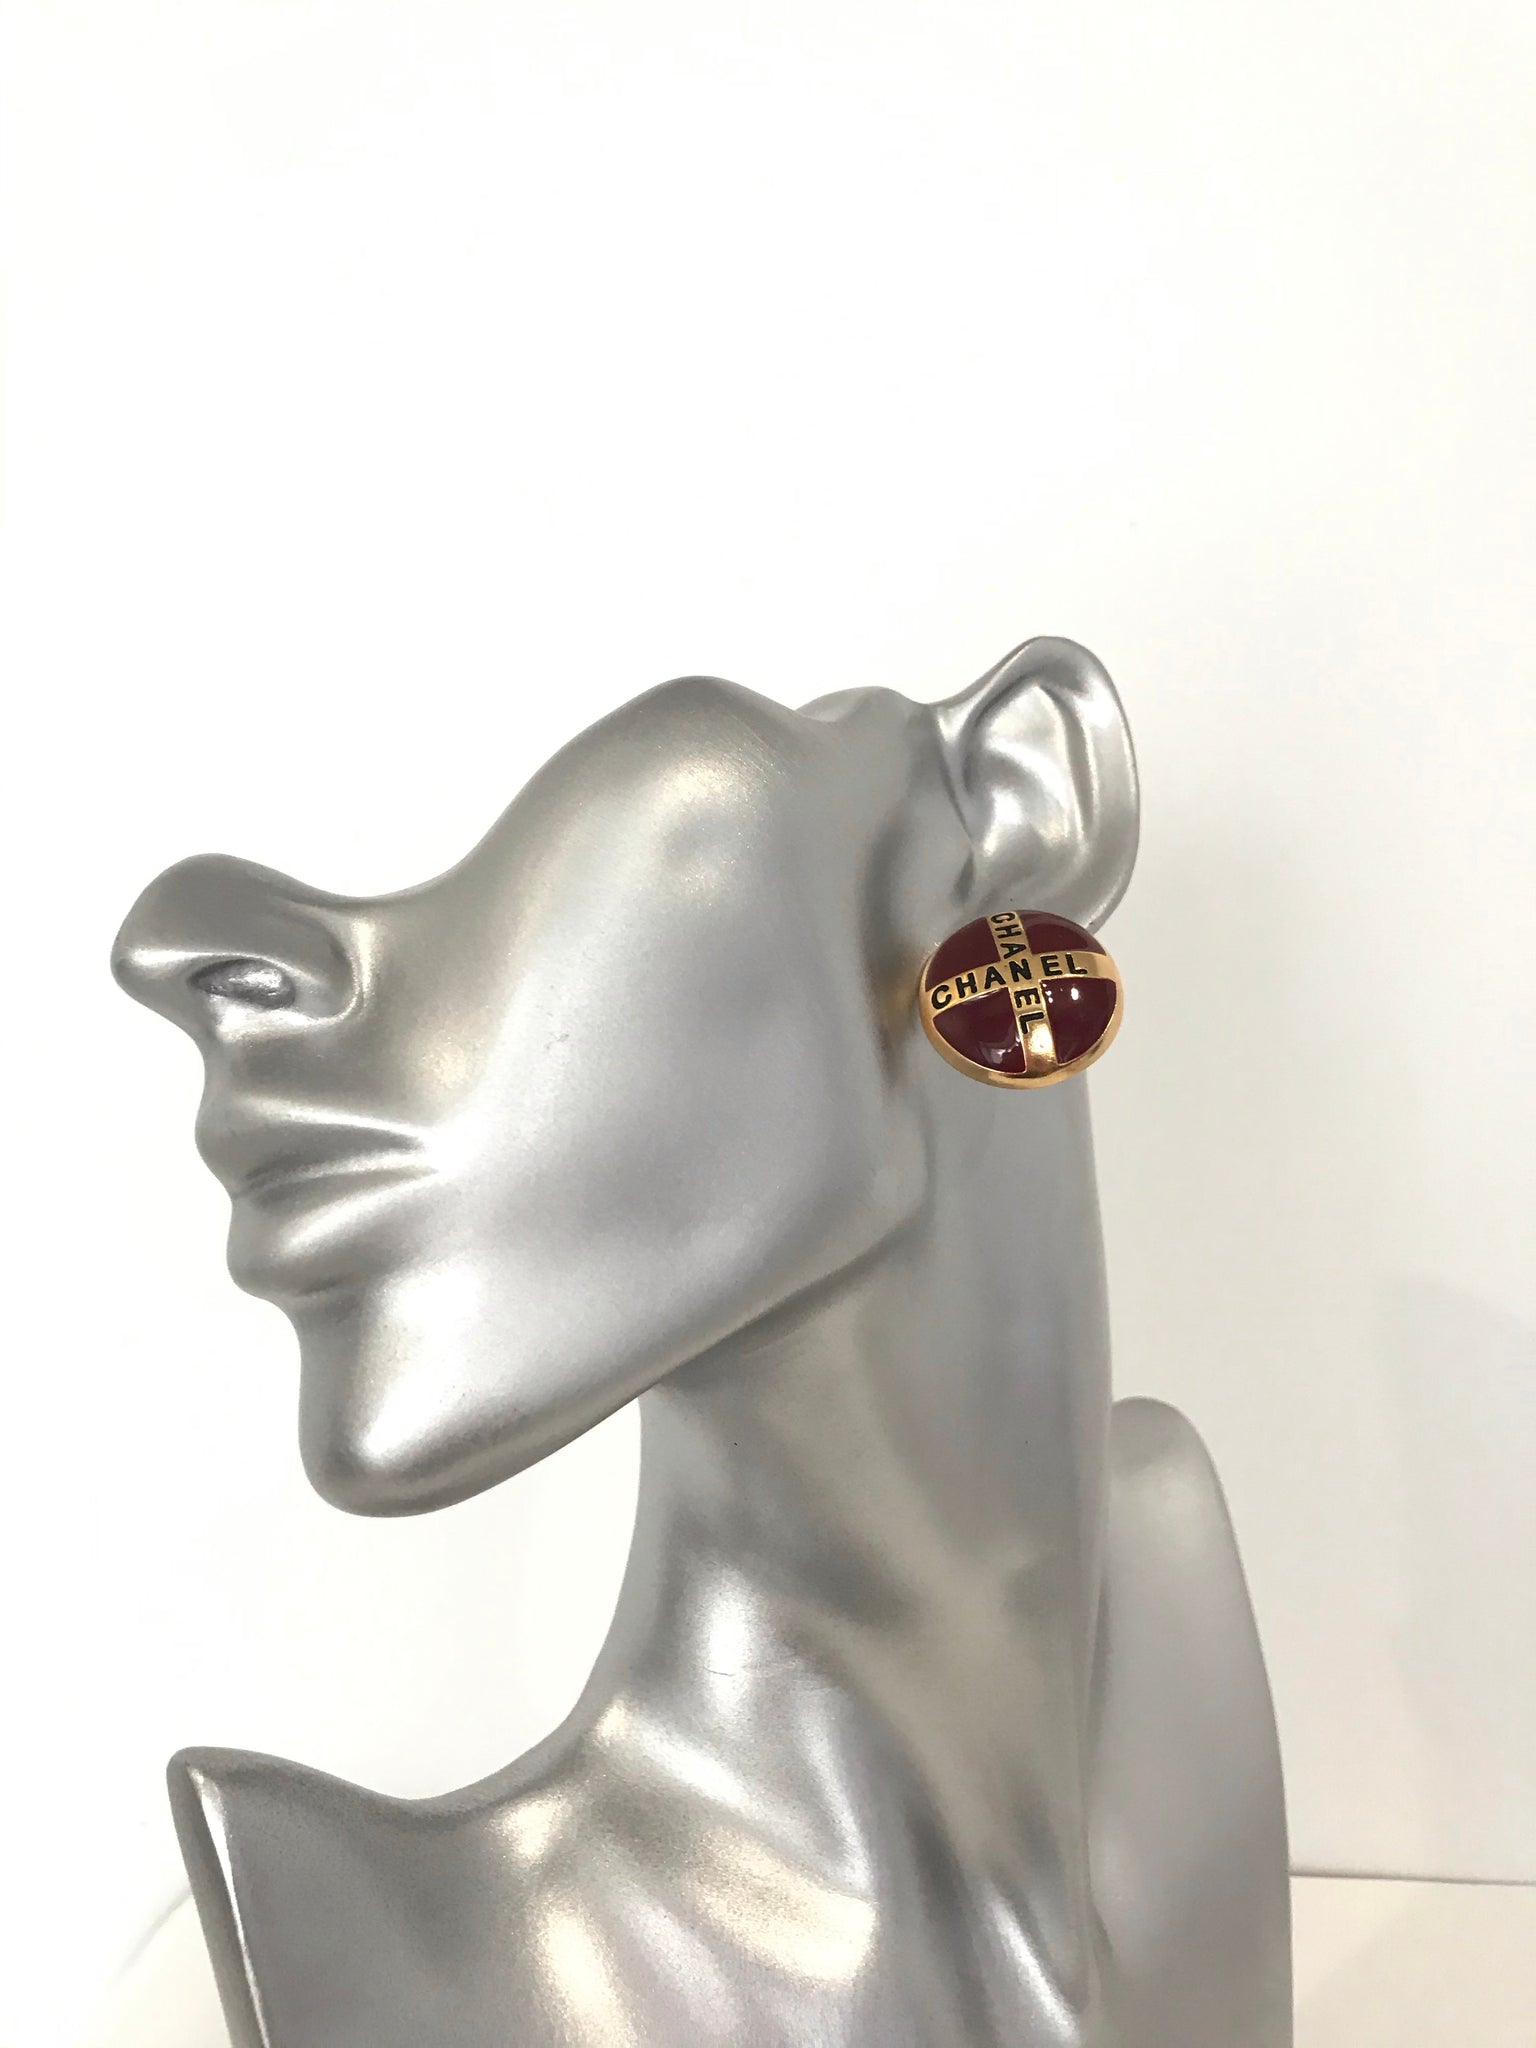 Chanel vintage large red button earring studs